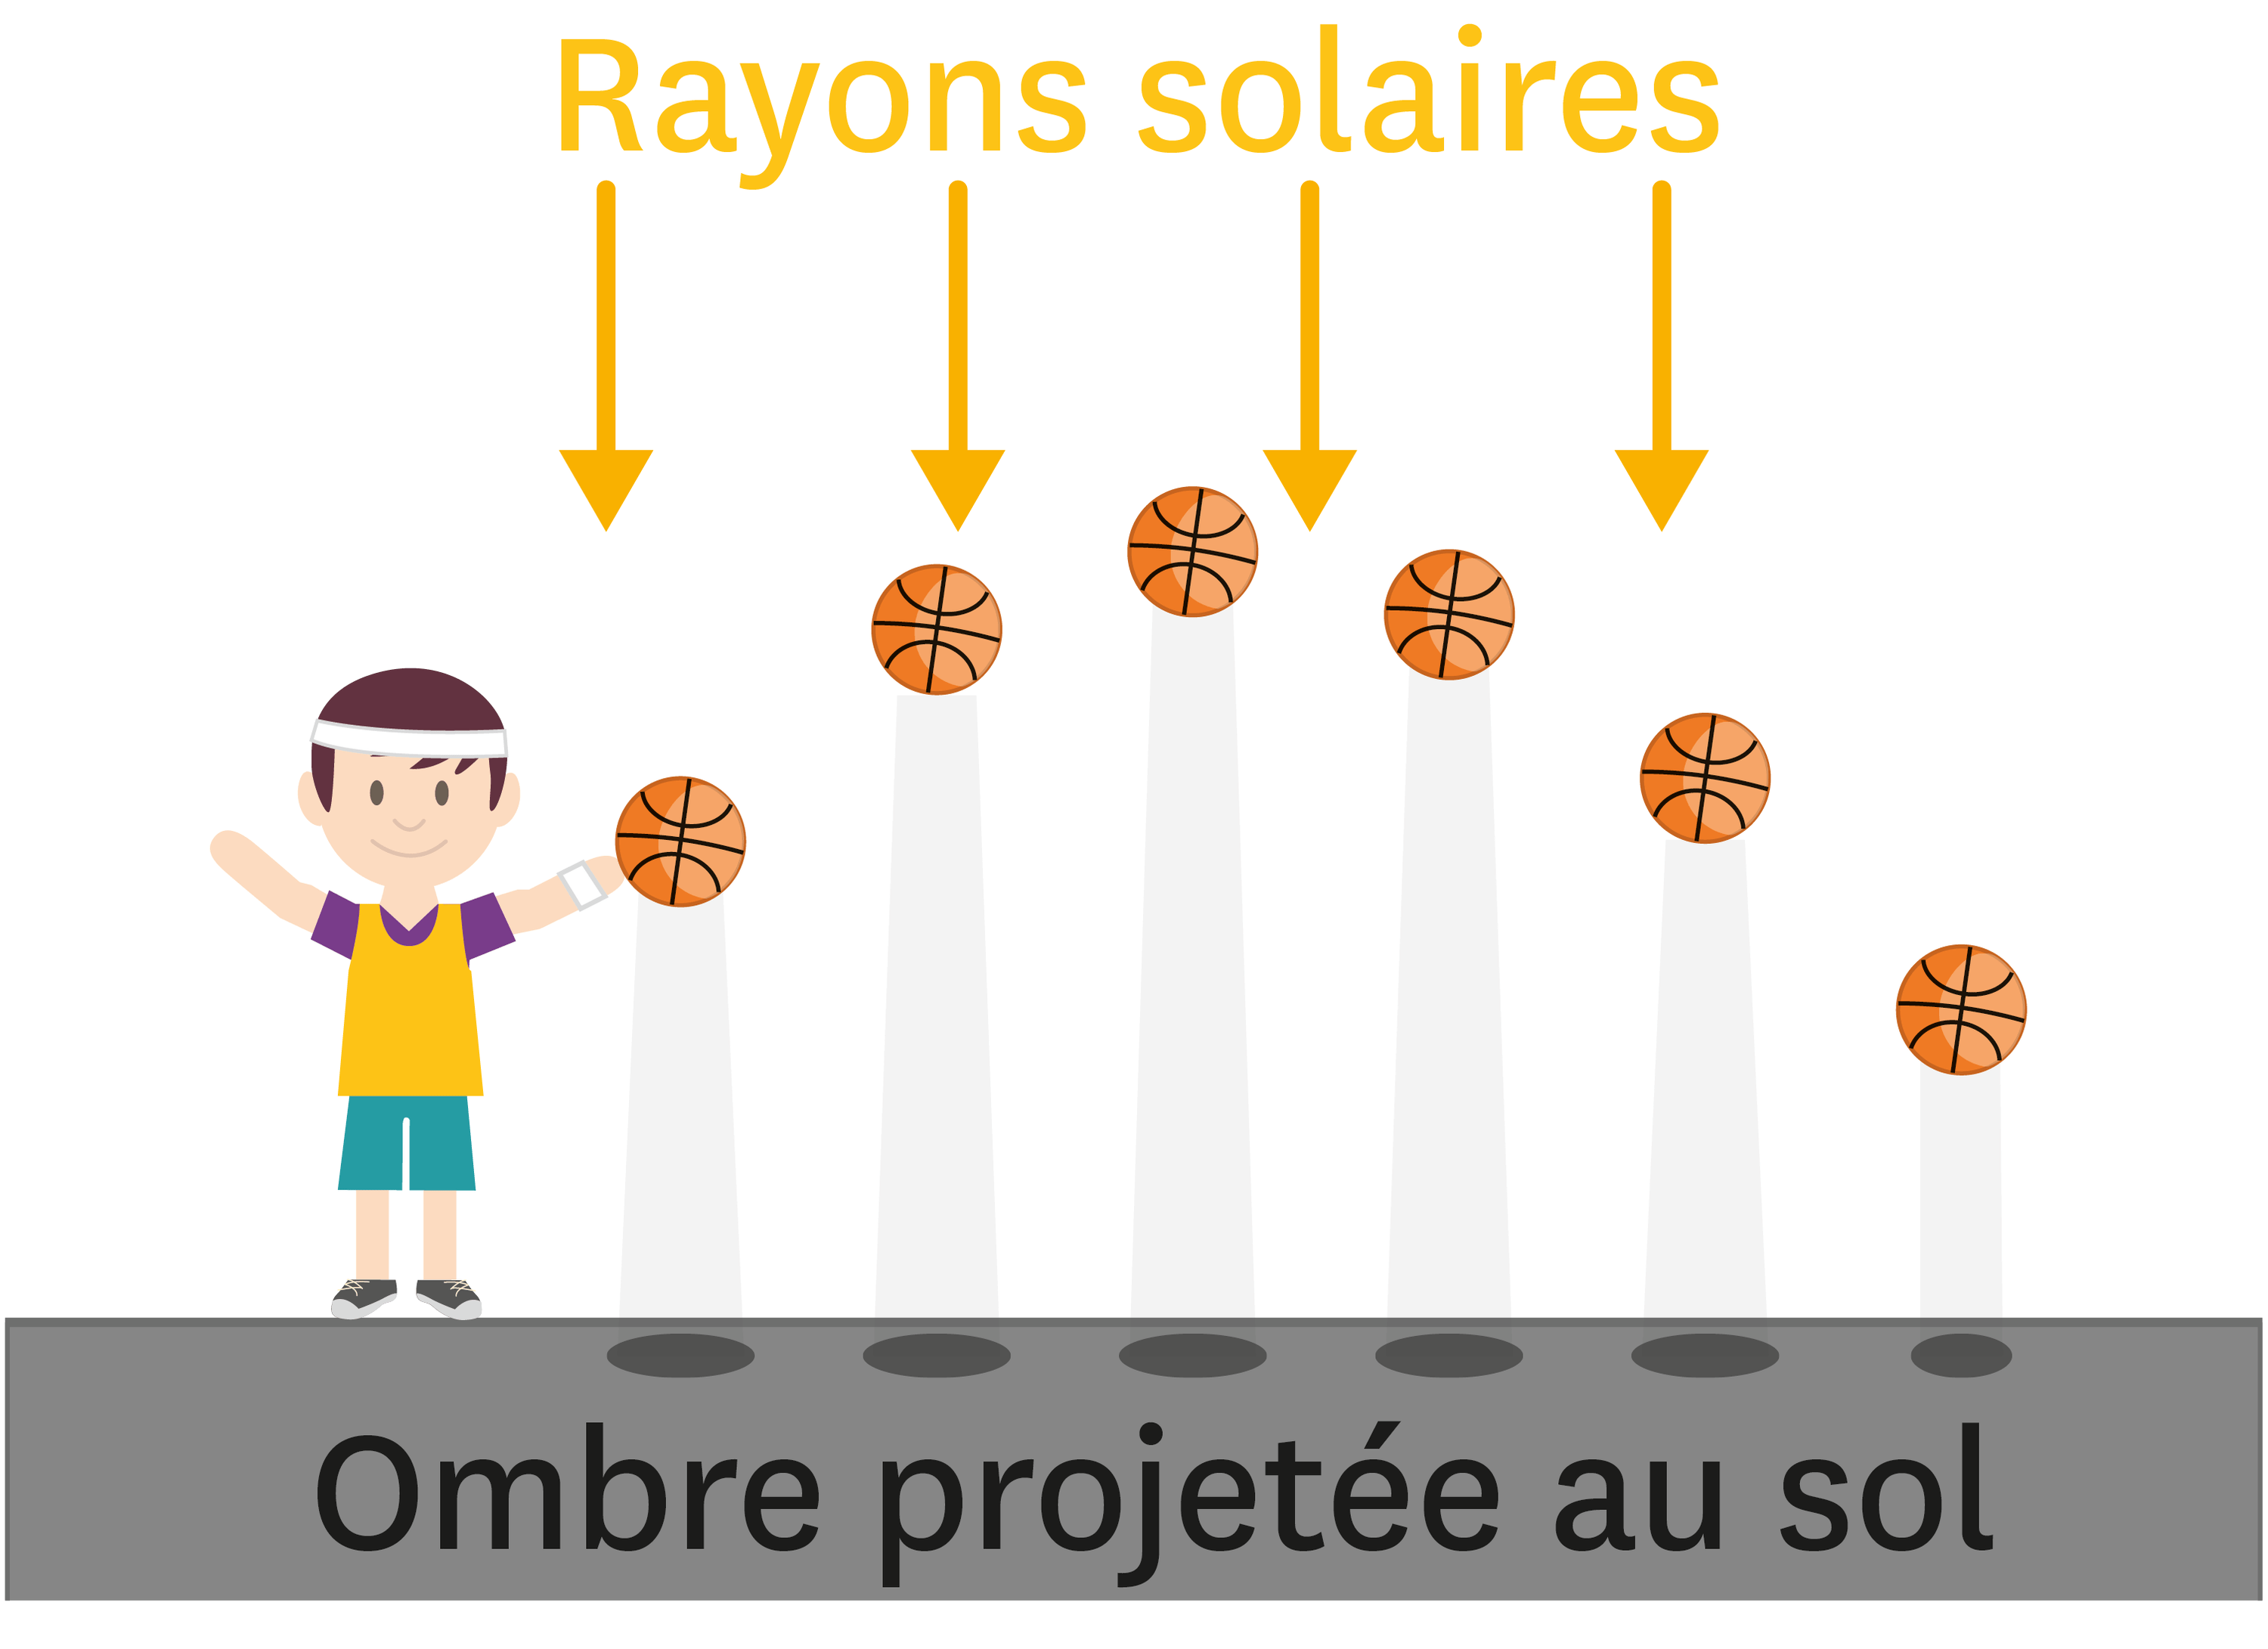 Rayons solaires.